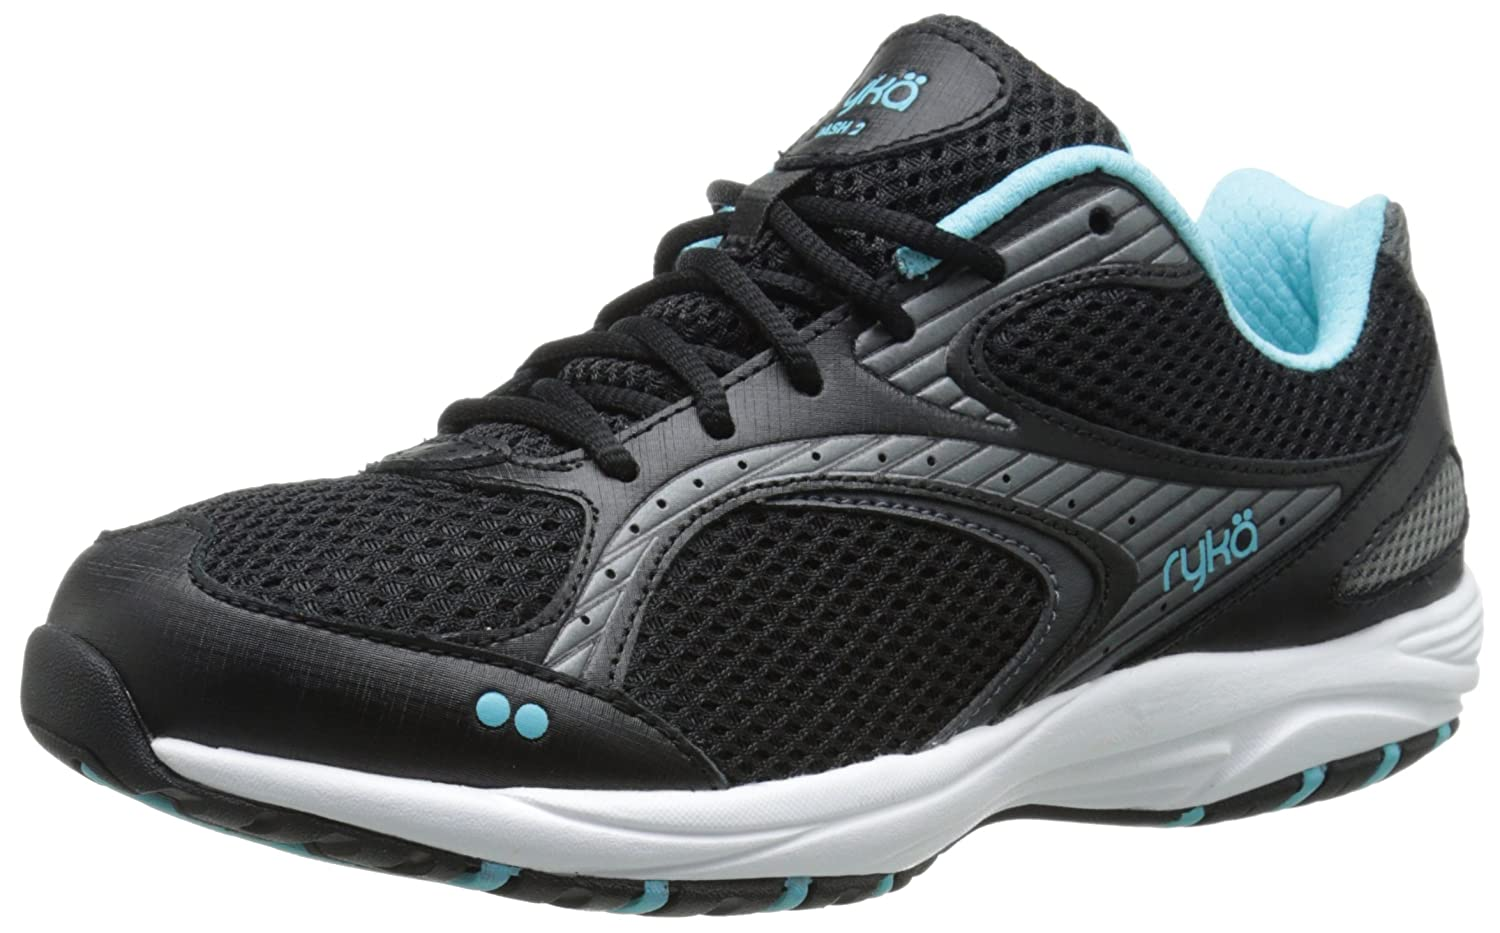 Ryka Women's Dash 2 Walking Shoe B00TJ62R84 10.5 W US|Black/Metallic Iron Grey/Winter Blue/White